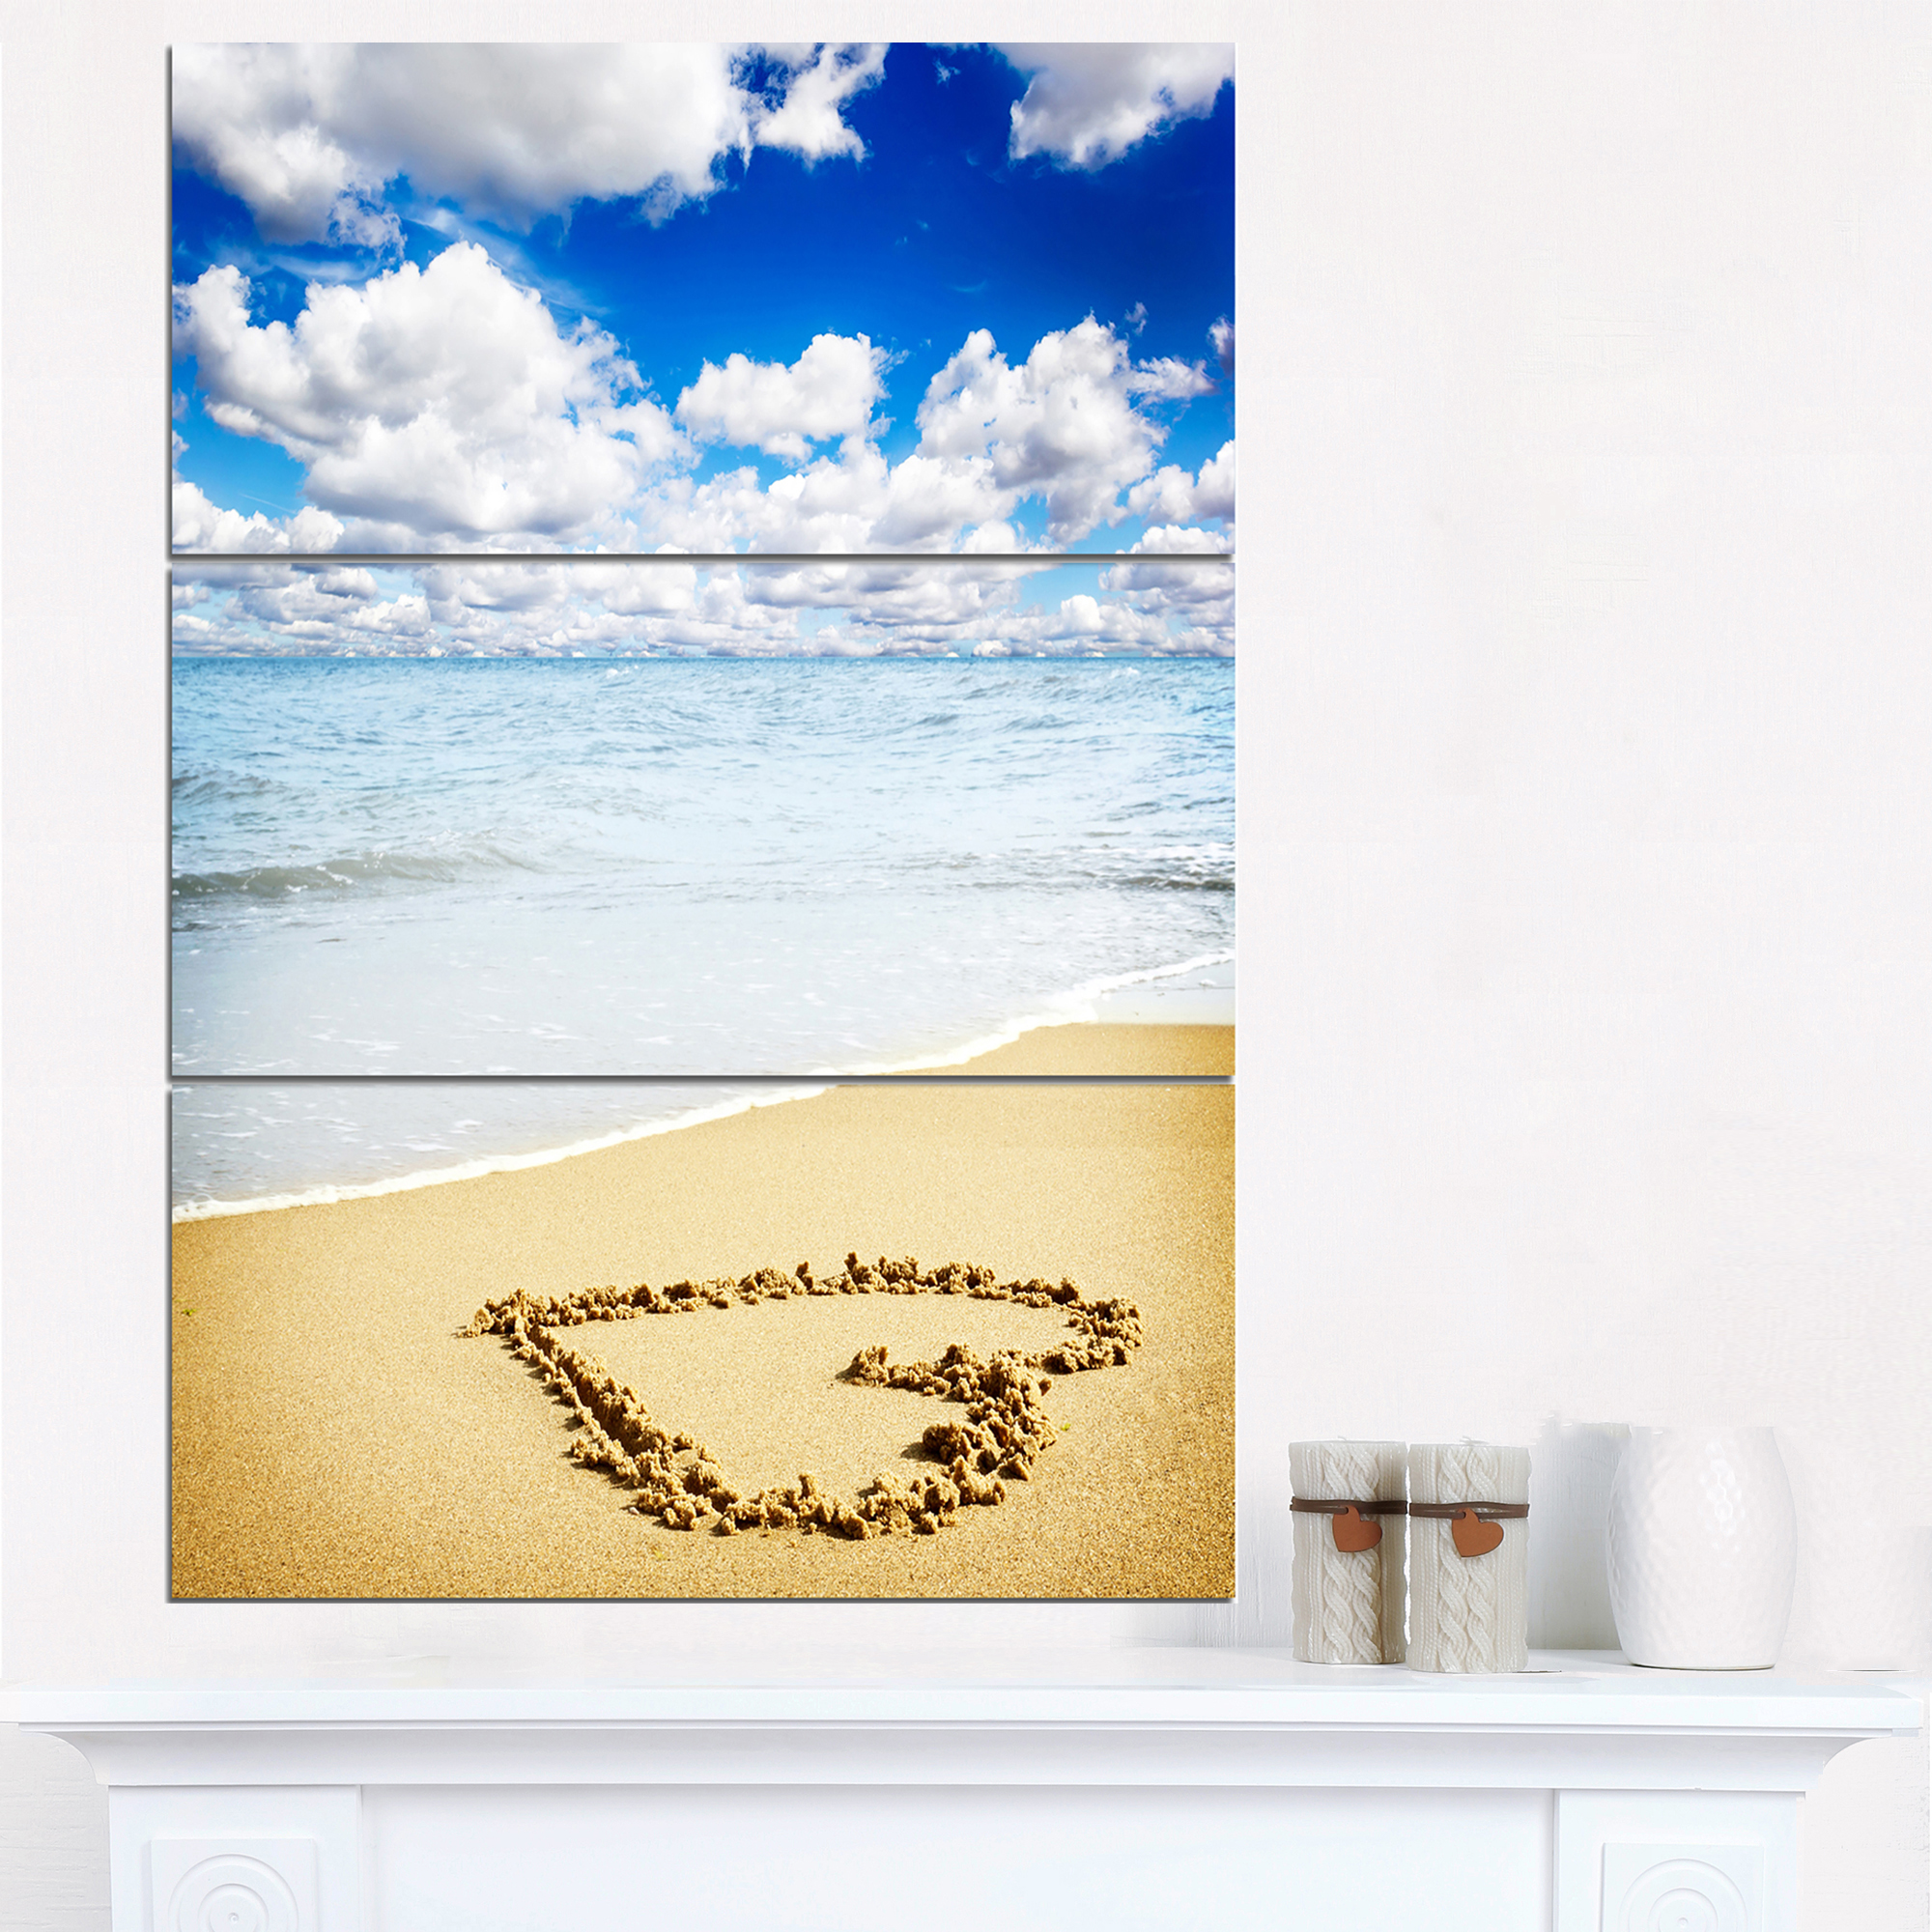 Massive Heart Drawn on Serene Beach - Seascape Canvas Art Print